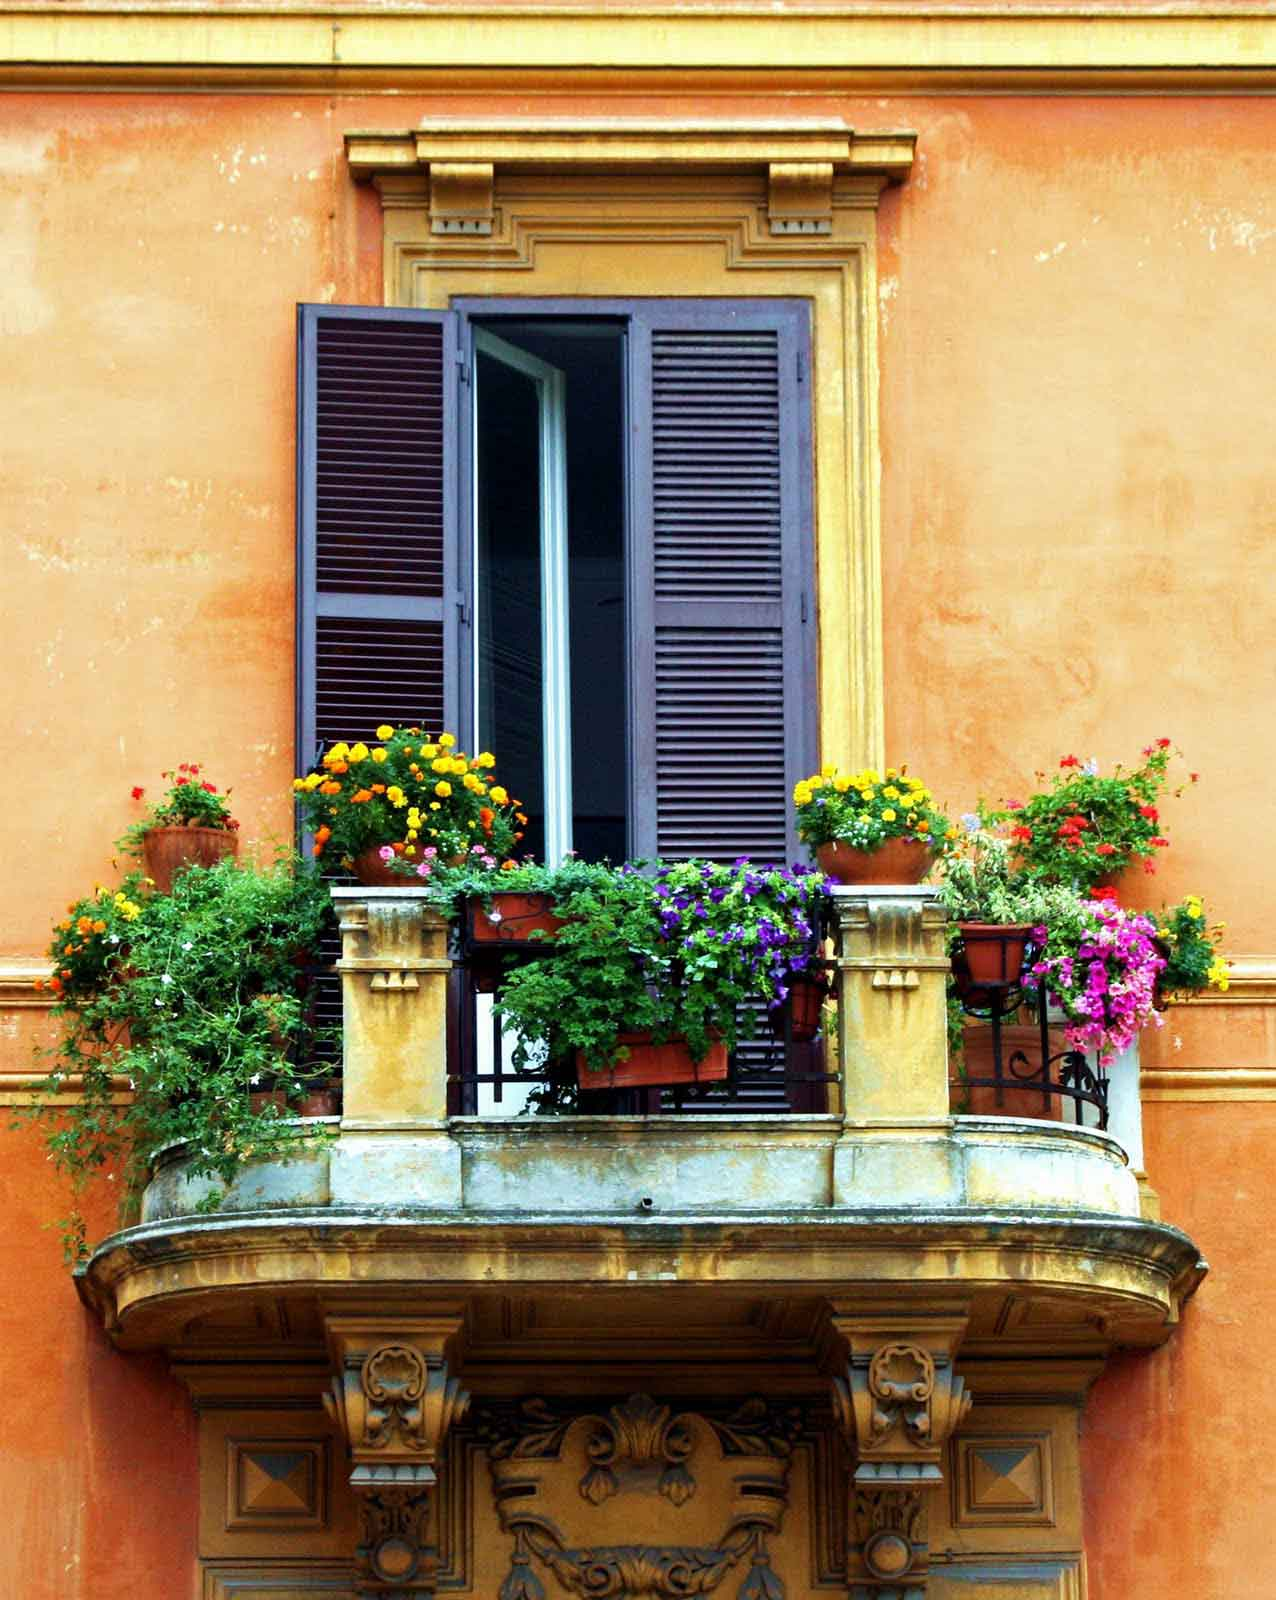 35 world 39 s most beautiful balconies your no 1 source of for Balconies or balconies